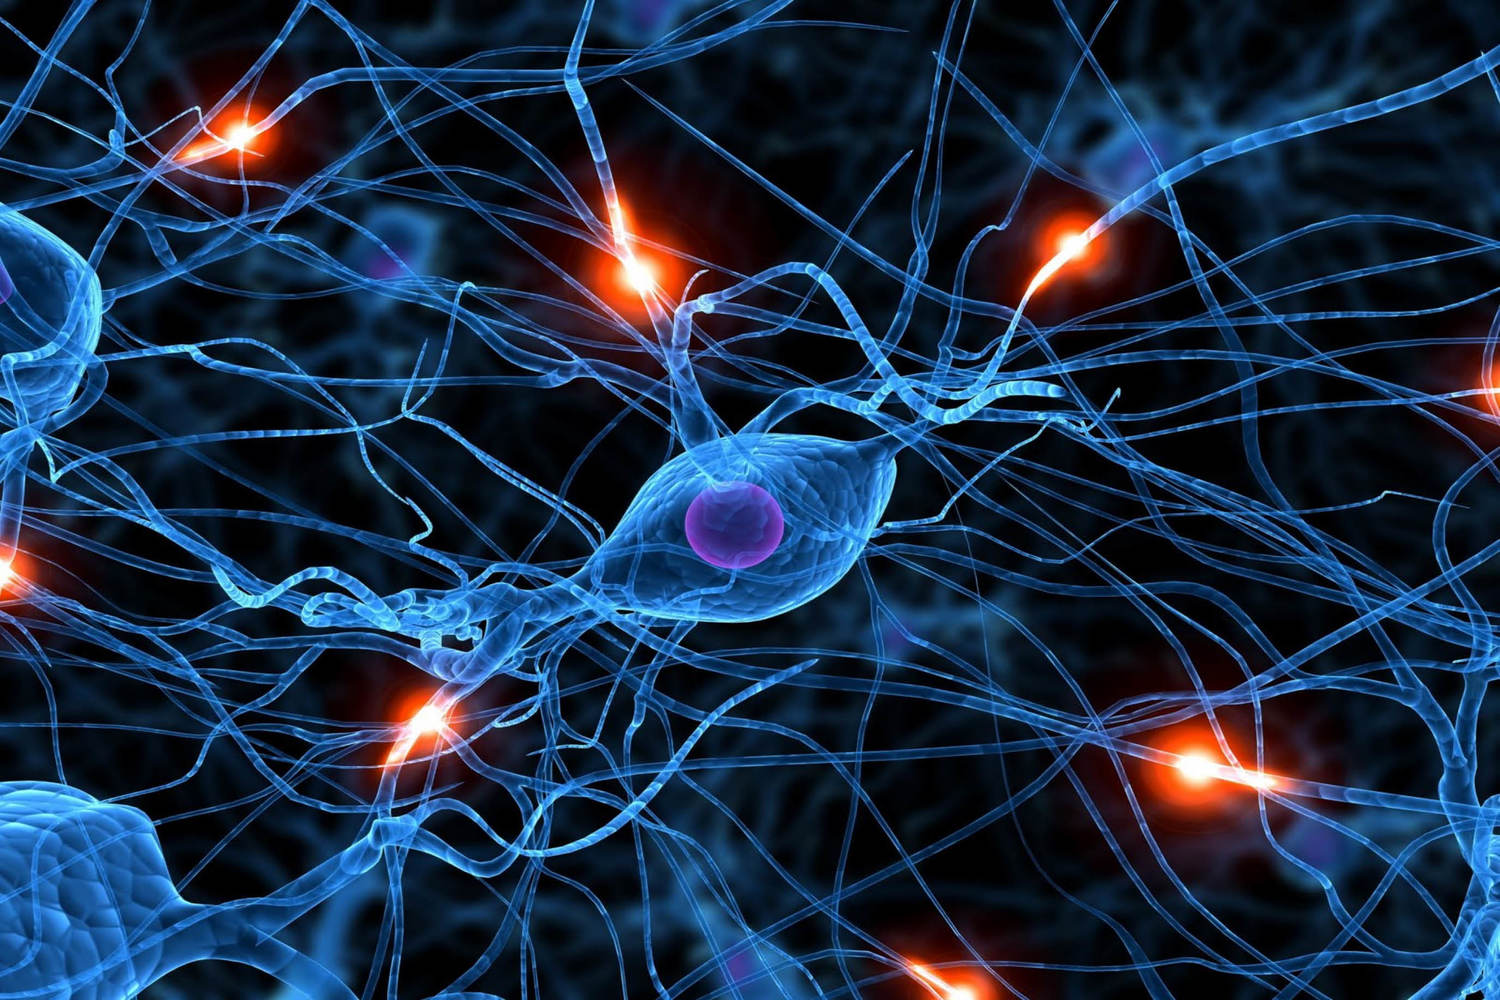 a report of brain cell New research has found one of the causes for schizophrenia, and genetic faults in the brain's glial cells seem to be responsible for the condition new research shows how dysfunction in the brain's glial cells - which ensure the communication between neurons - may drive schizophrenia.